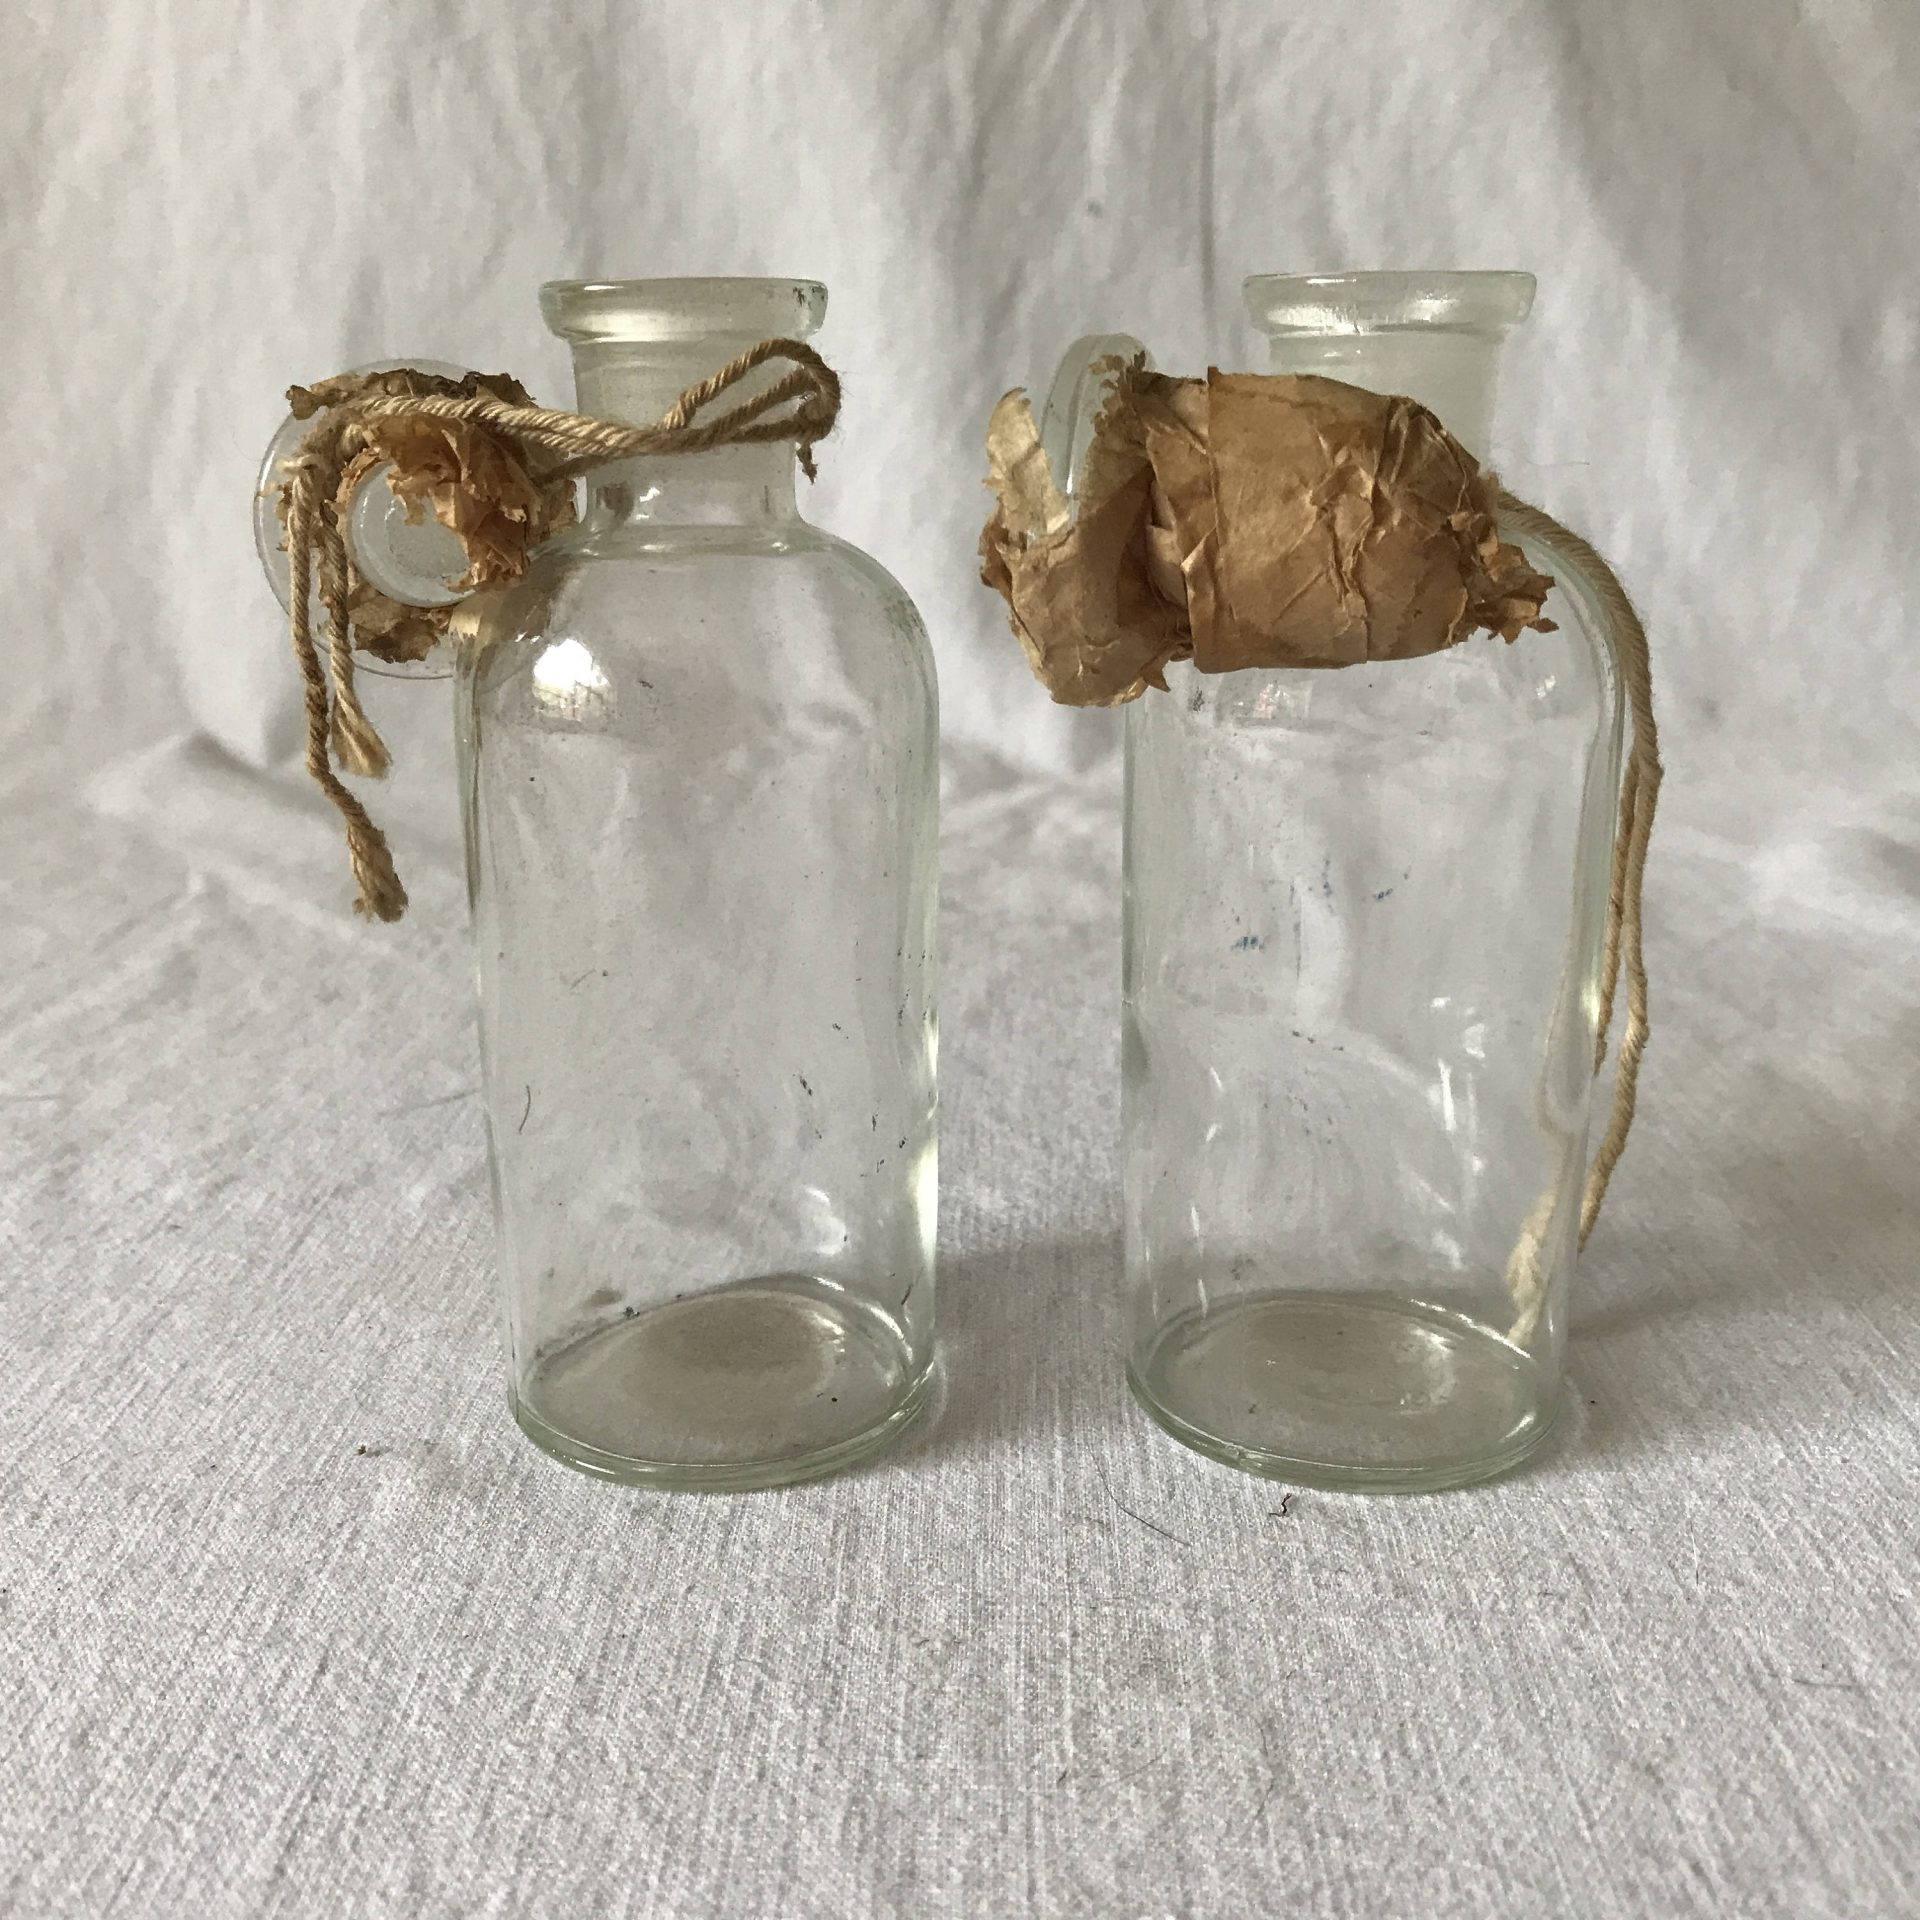 Antique Pair Of Unused Gl Apothecary Jars With Ground Stoppers Still Wred In Paper